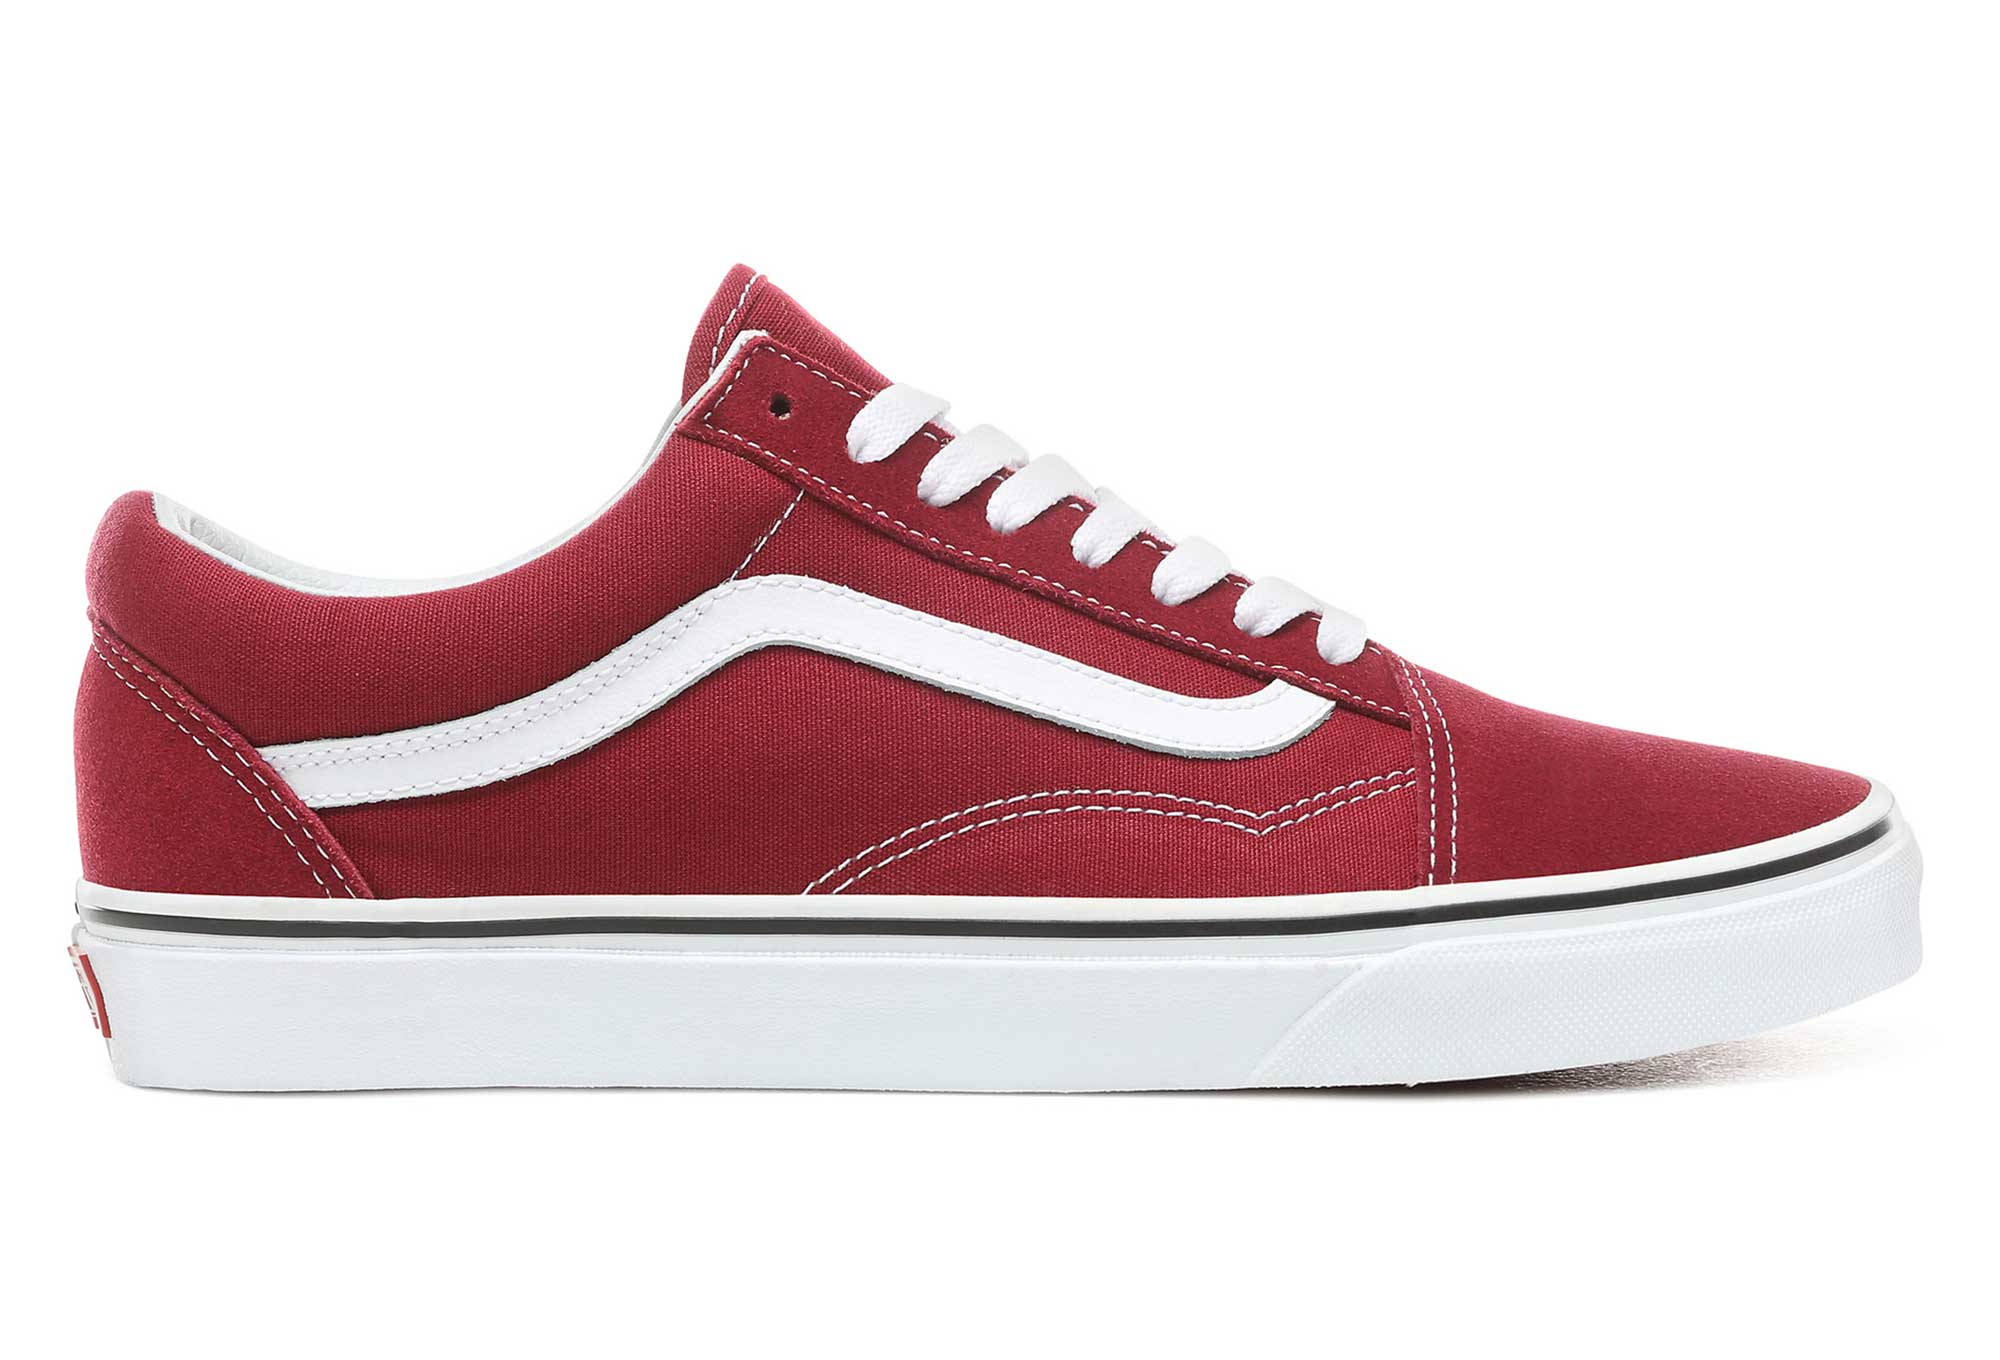 f11a4661ab1c Vans UA Old Skool Rumba Shoes Red   White